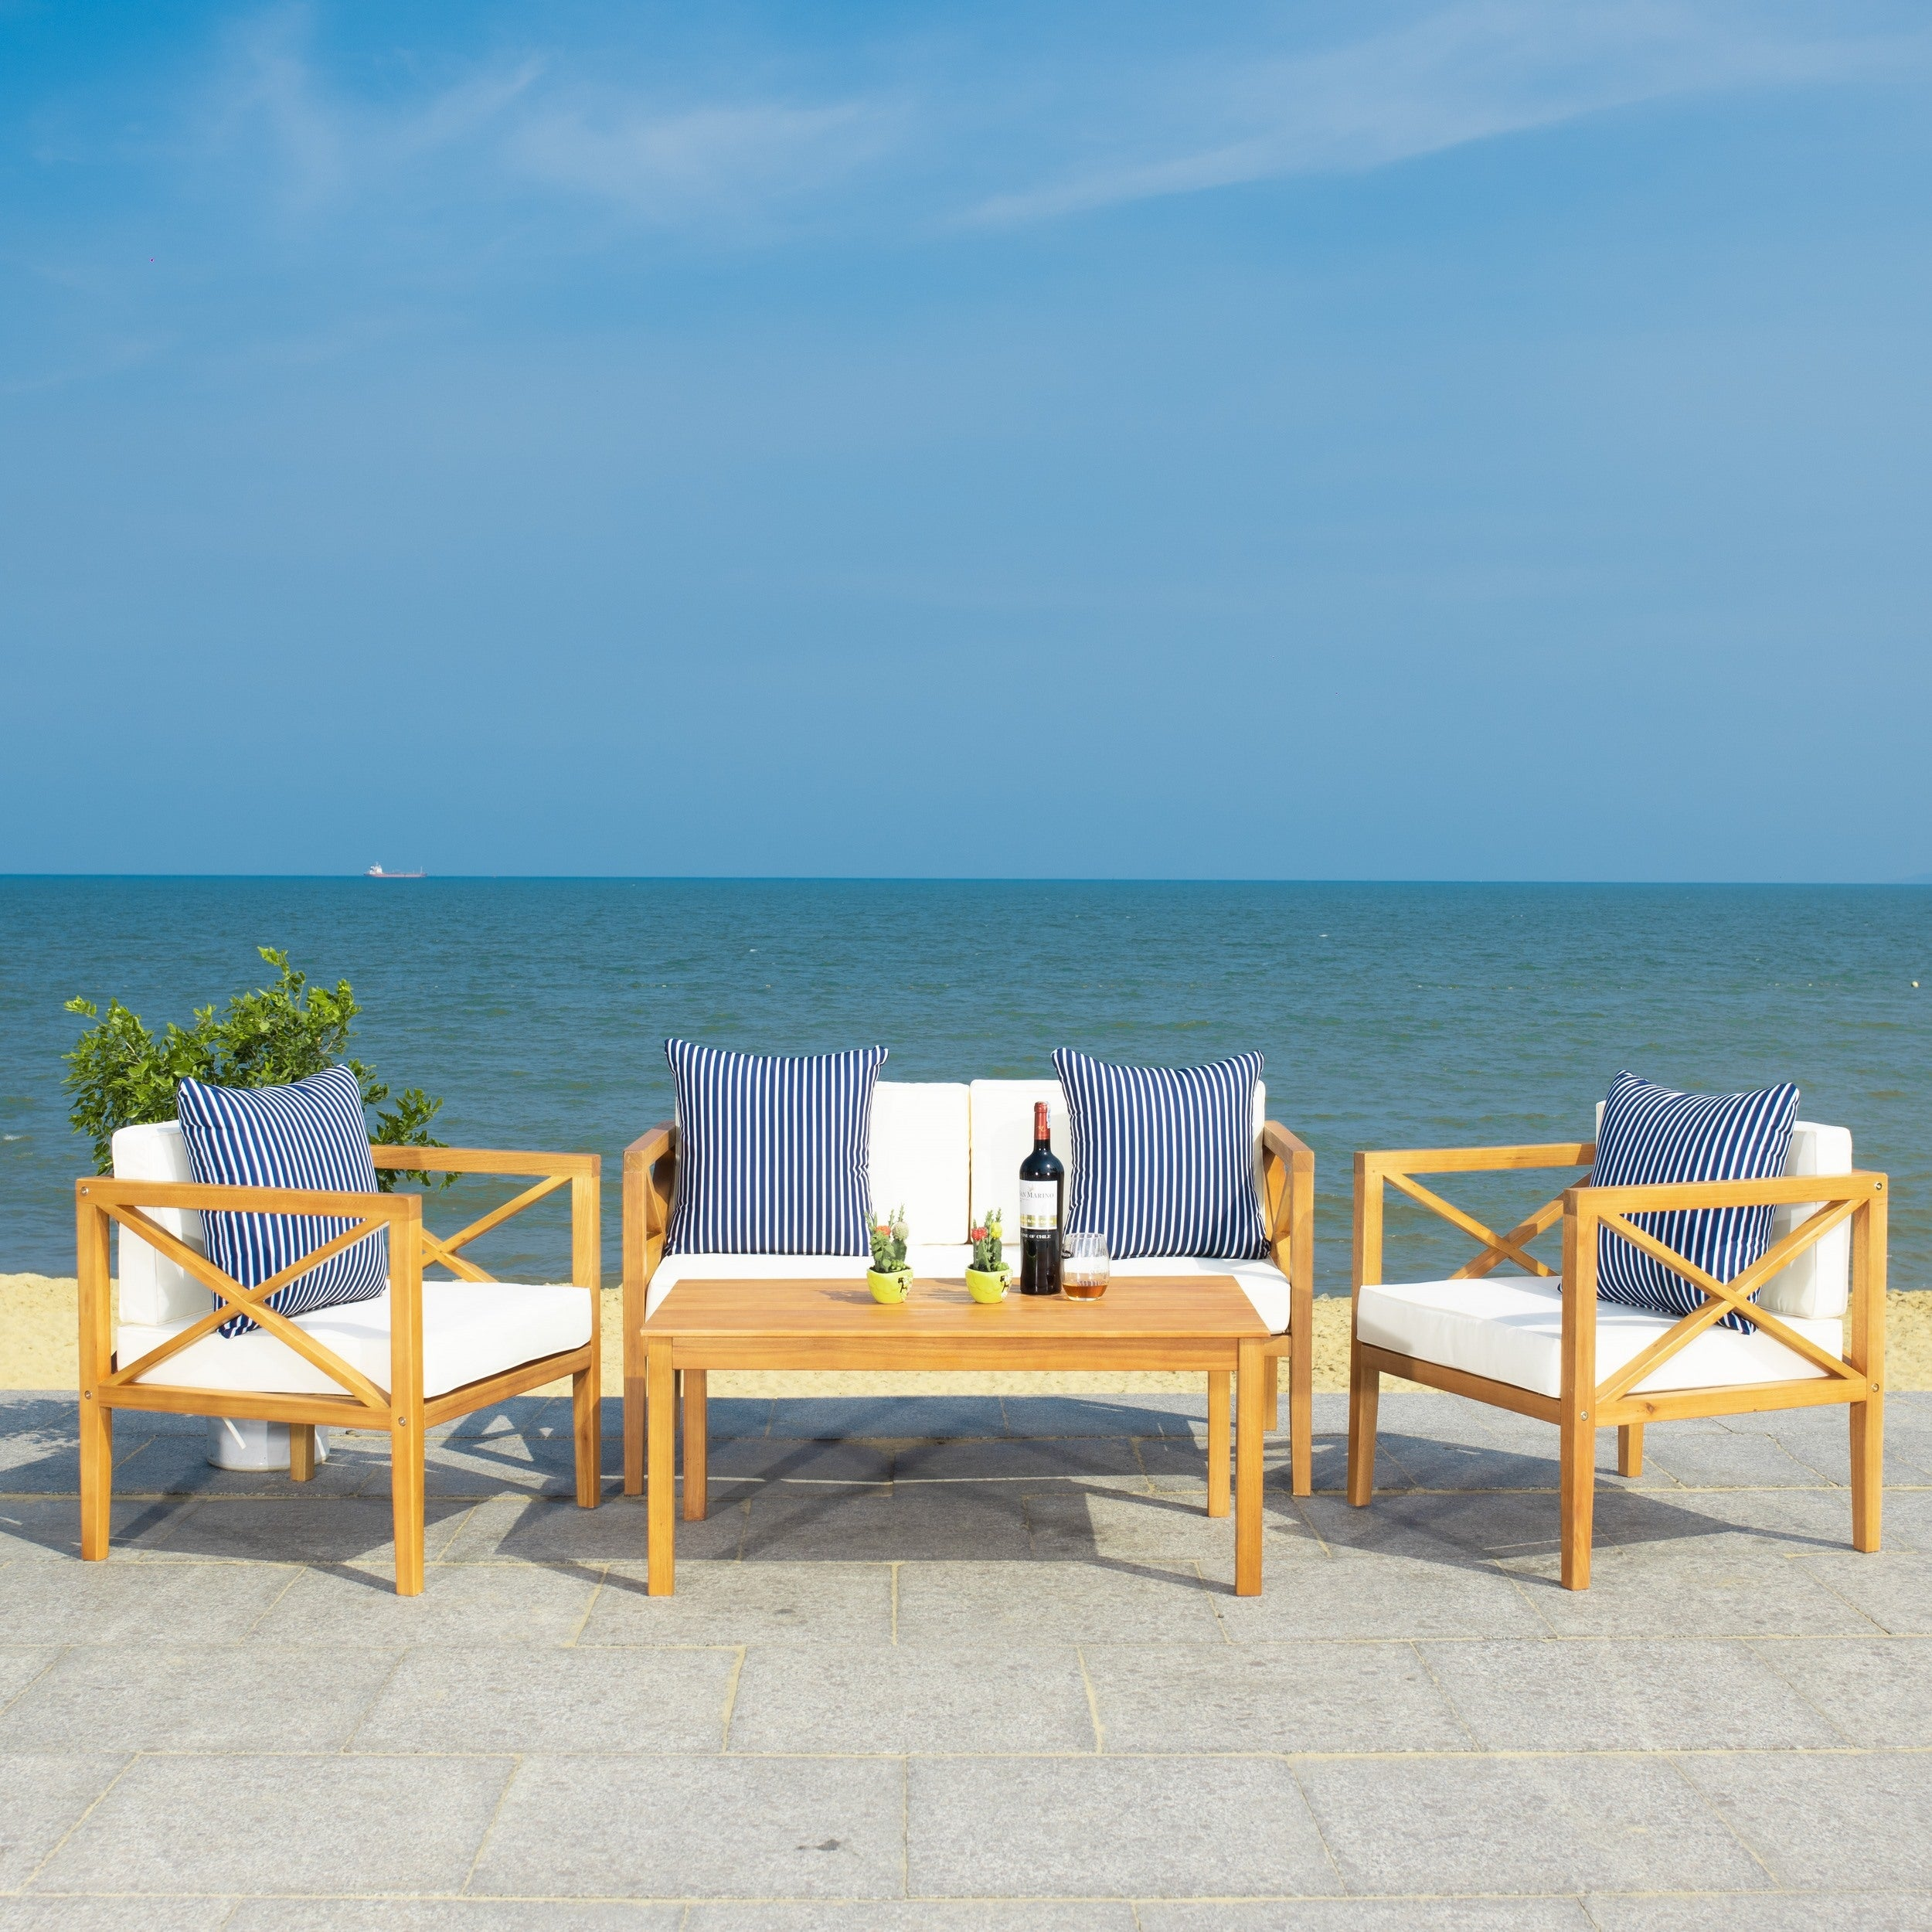 Safavieh Outdoor Living Montez 4 Piece Set with Accent | eBay on Safavieh Outdoor Living Montez 4 Piece Set id=62163